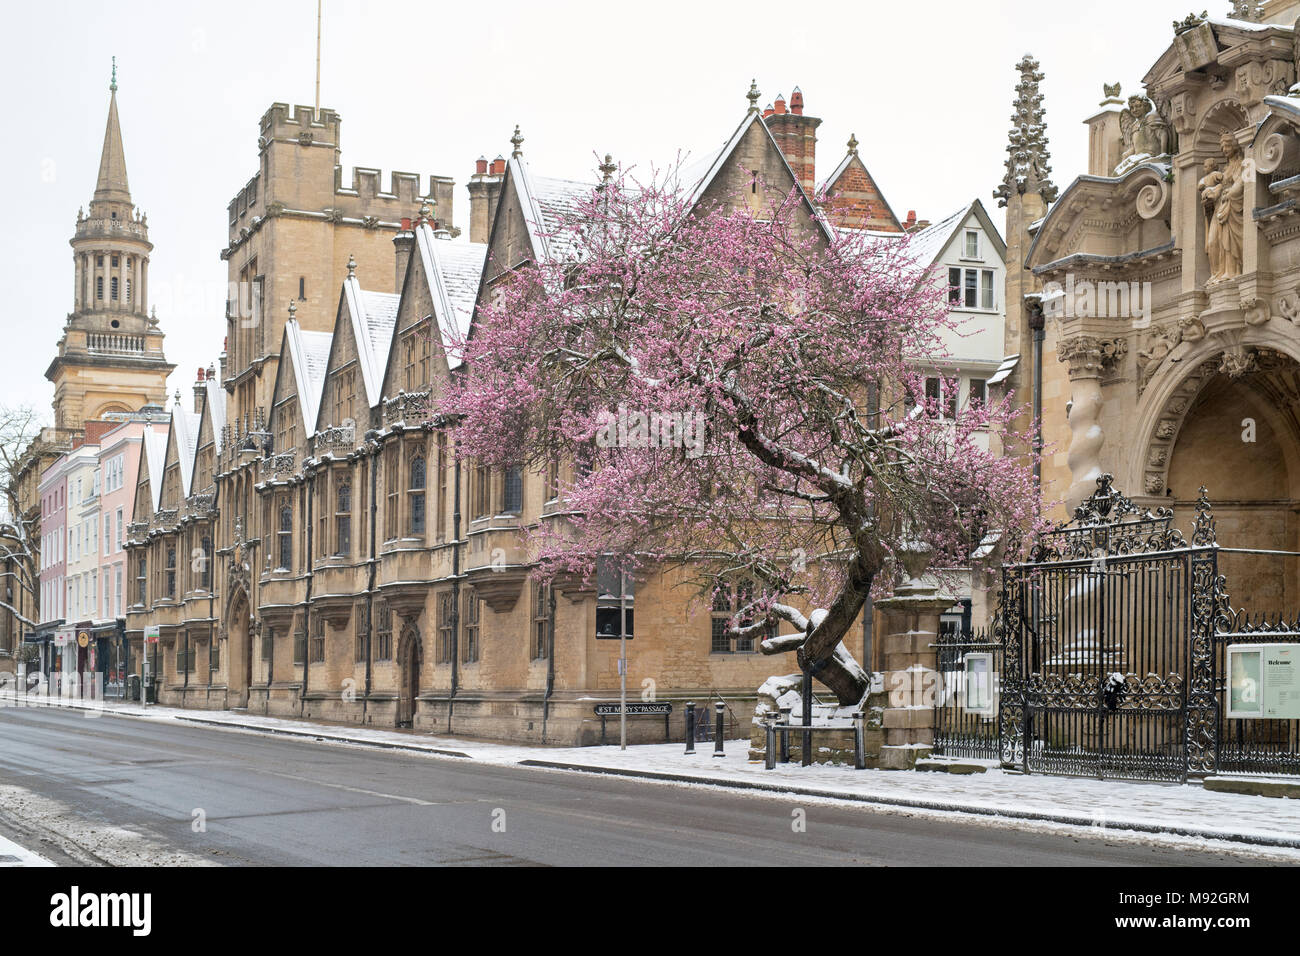 Almond Tree in blossom in the snow outside St Marys Church, High Street, Oxford, Oxfordshire, England - Stock Image